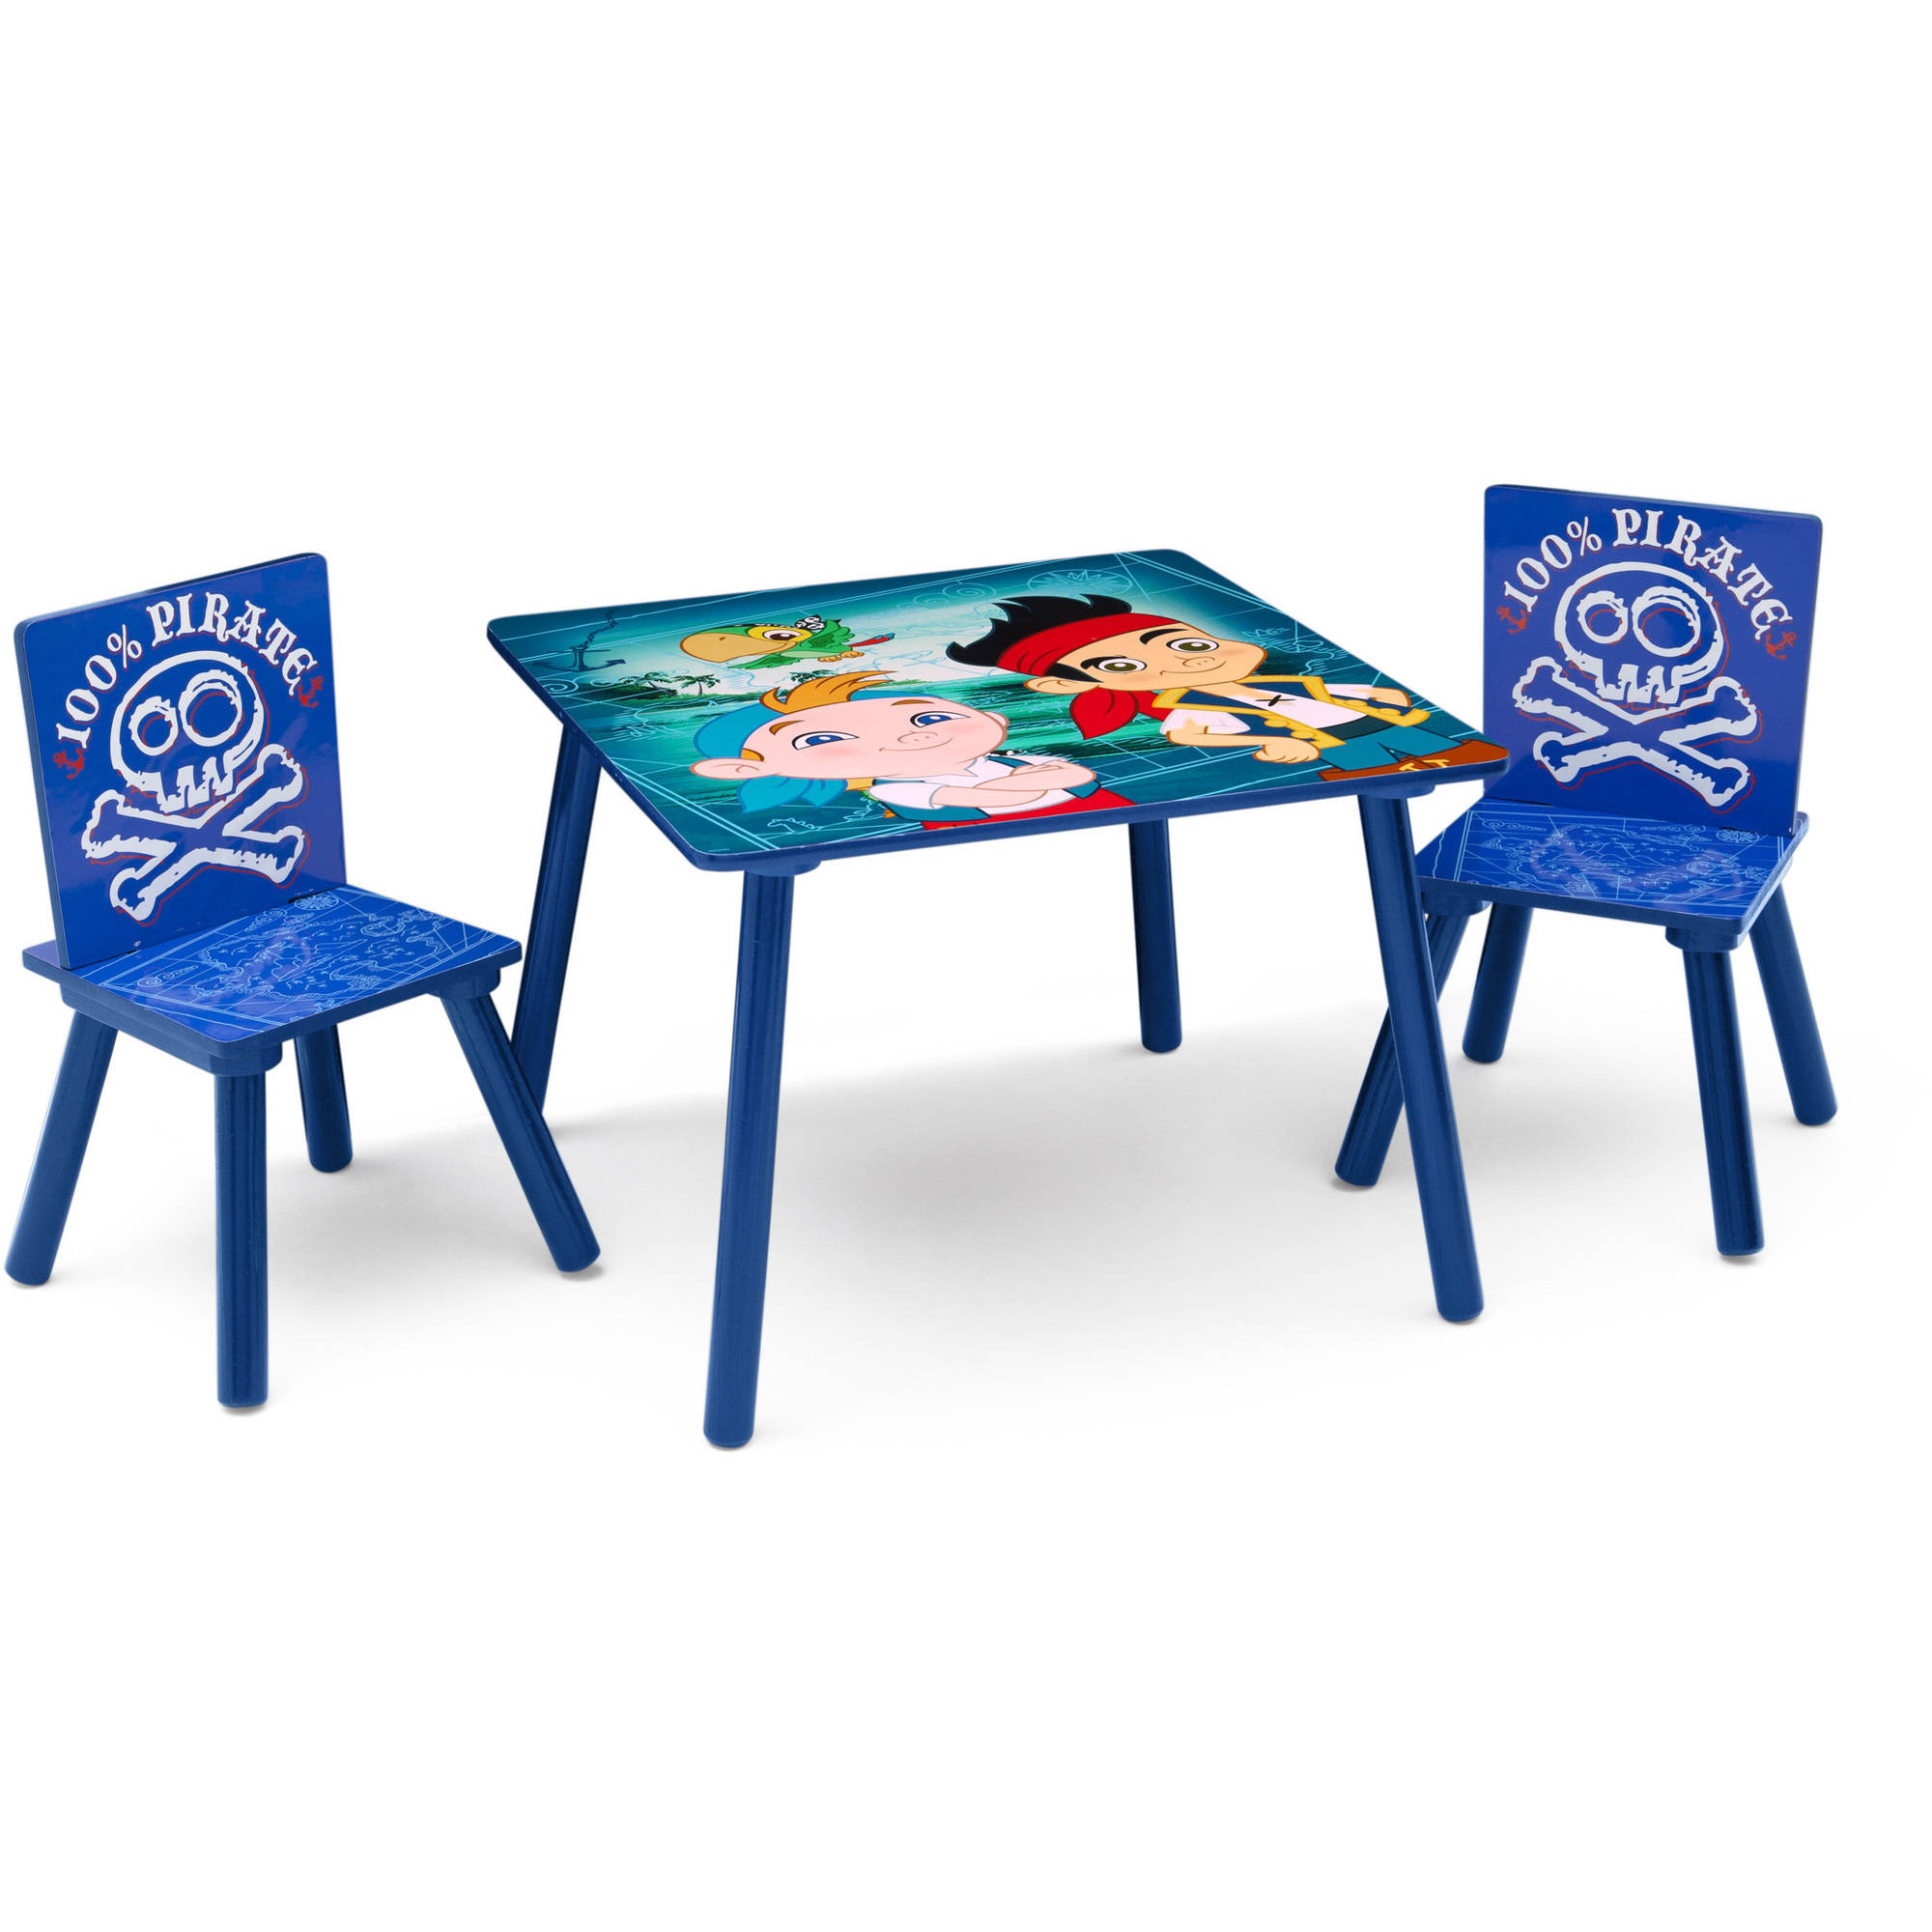 Disney Jr. Jake and the Never Land Pirates Table and Chair Set